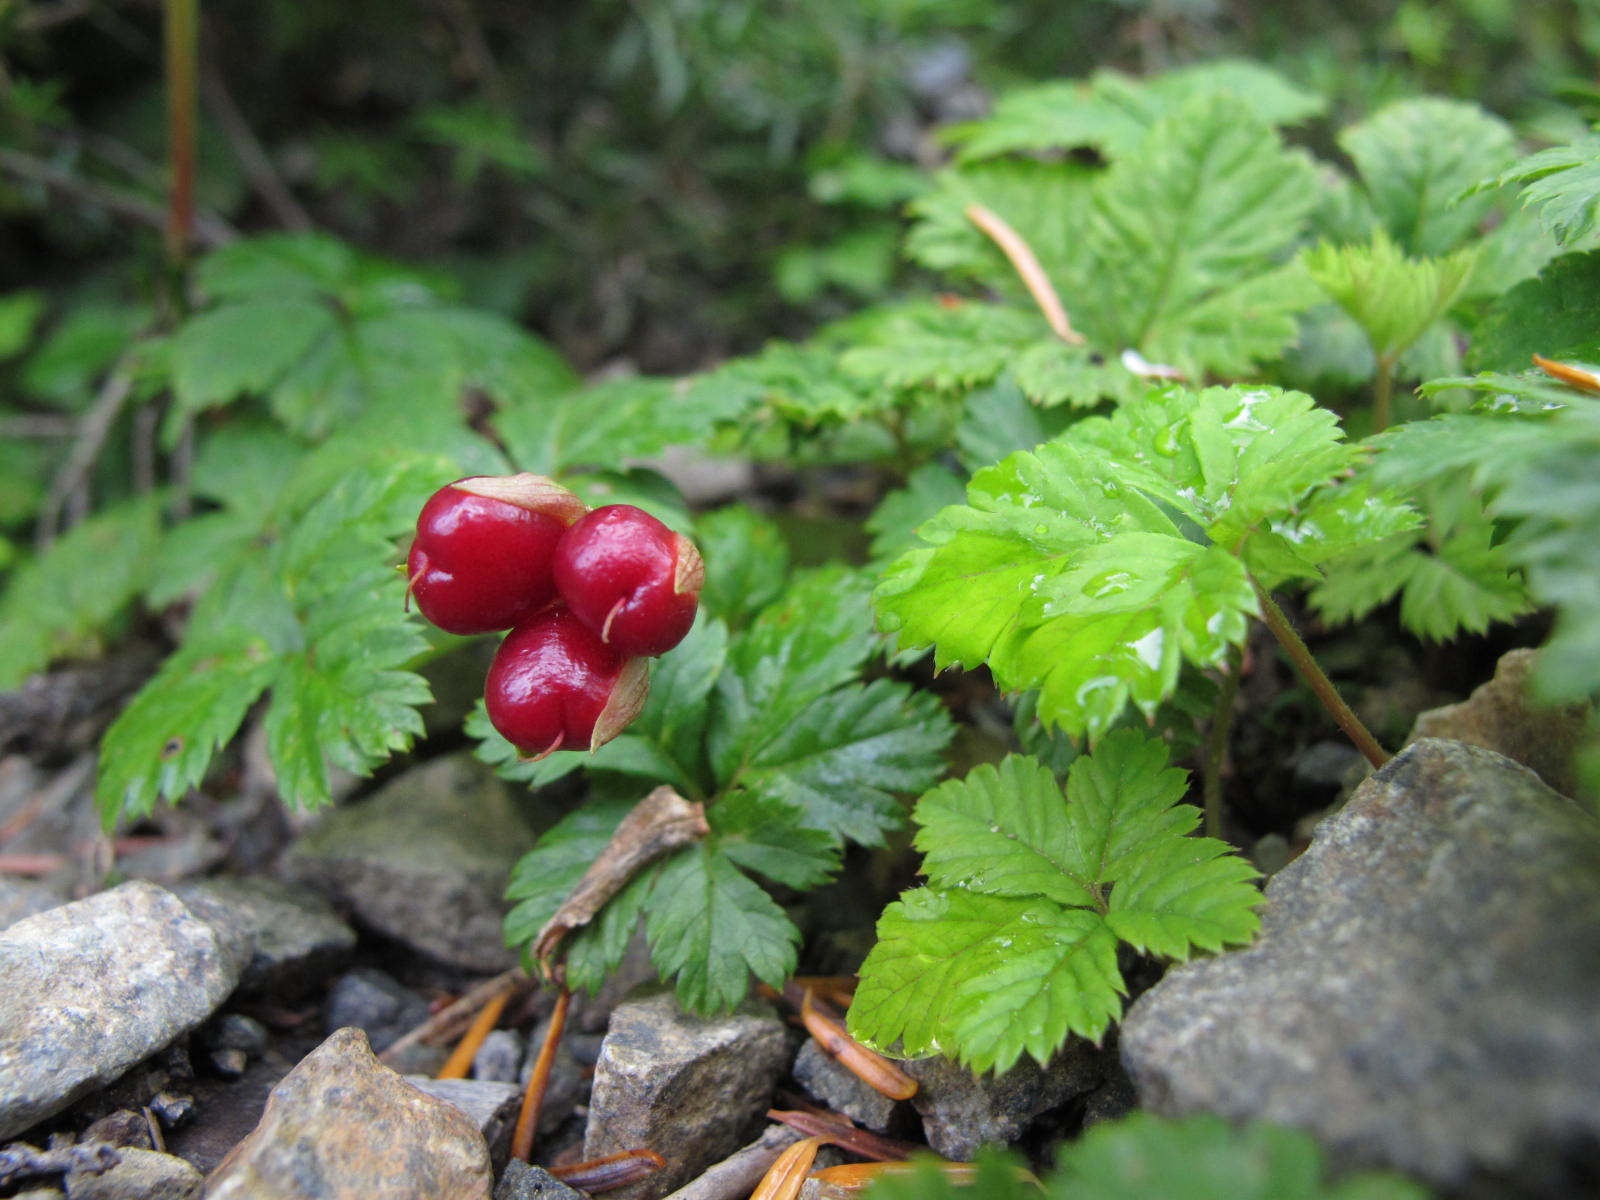 Close-up of five-leaved bramble, Rubus pedatus.